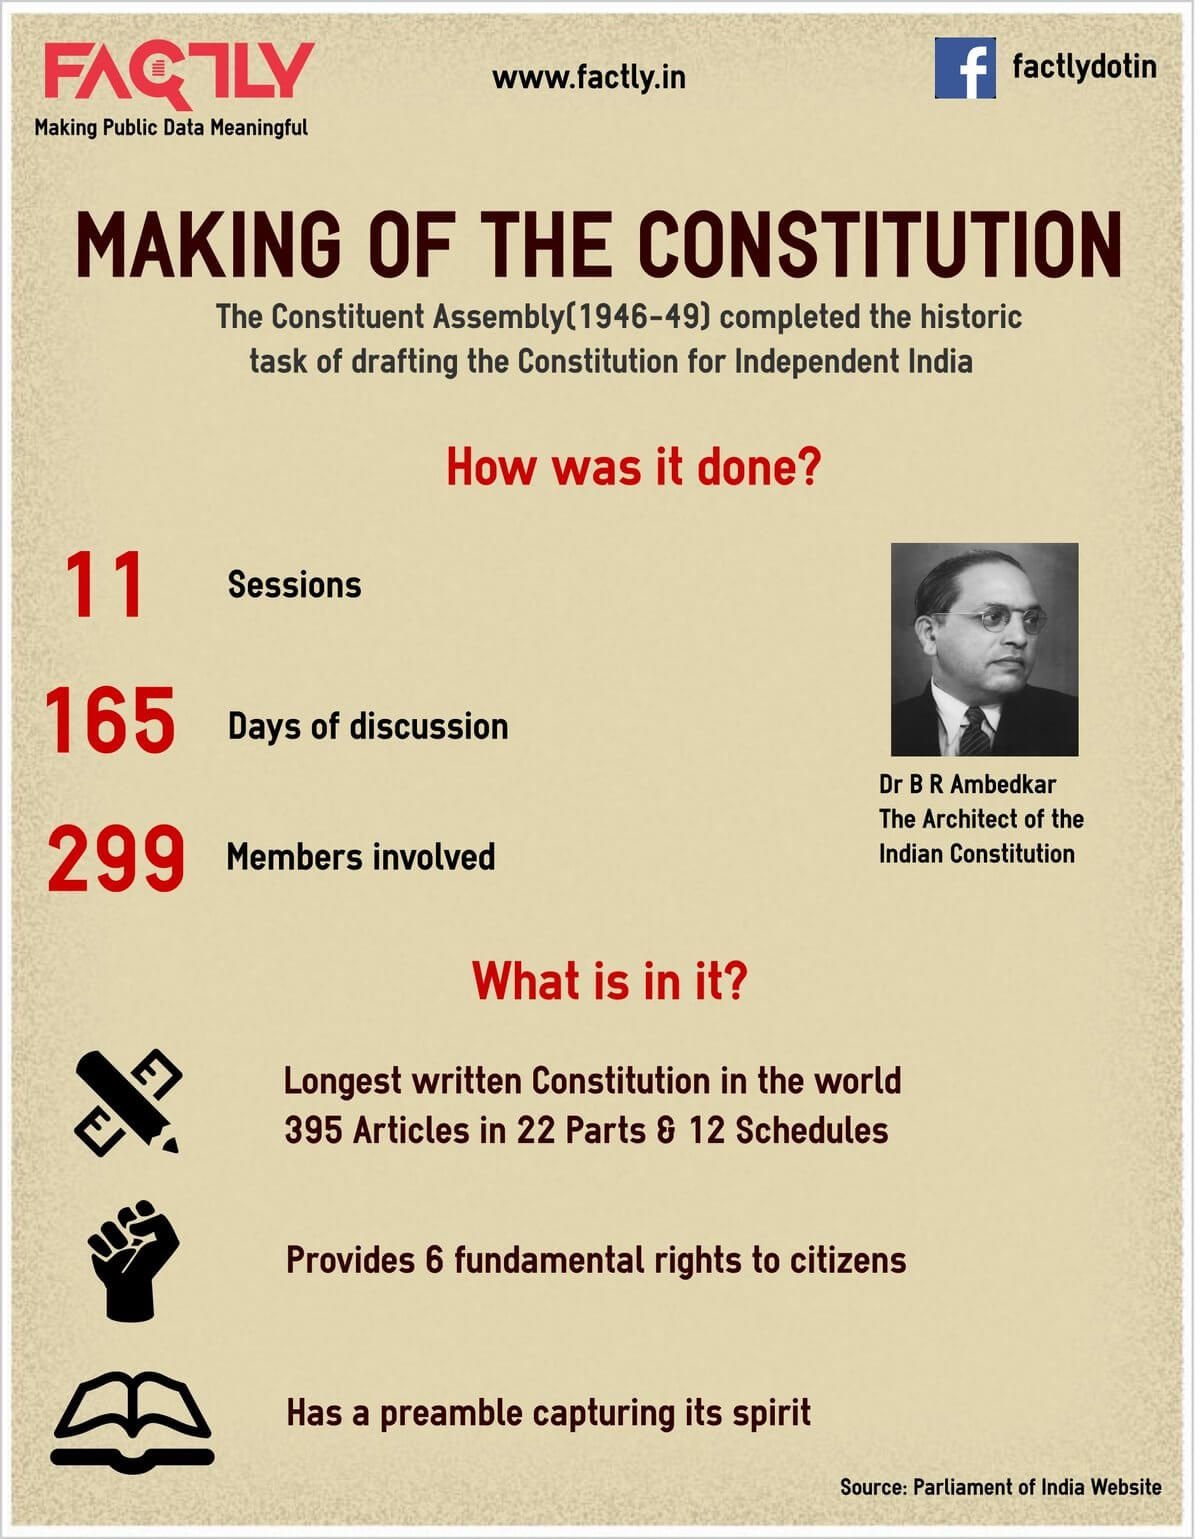 Making Of The Indian Constitution Infographic Factly General Knowledge Fact History Facts Preamble Pdf In Hindi And English